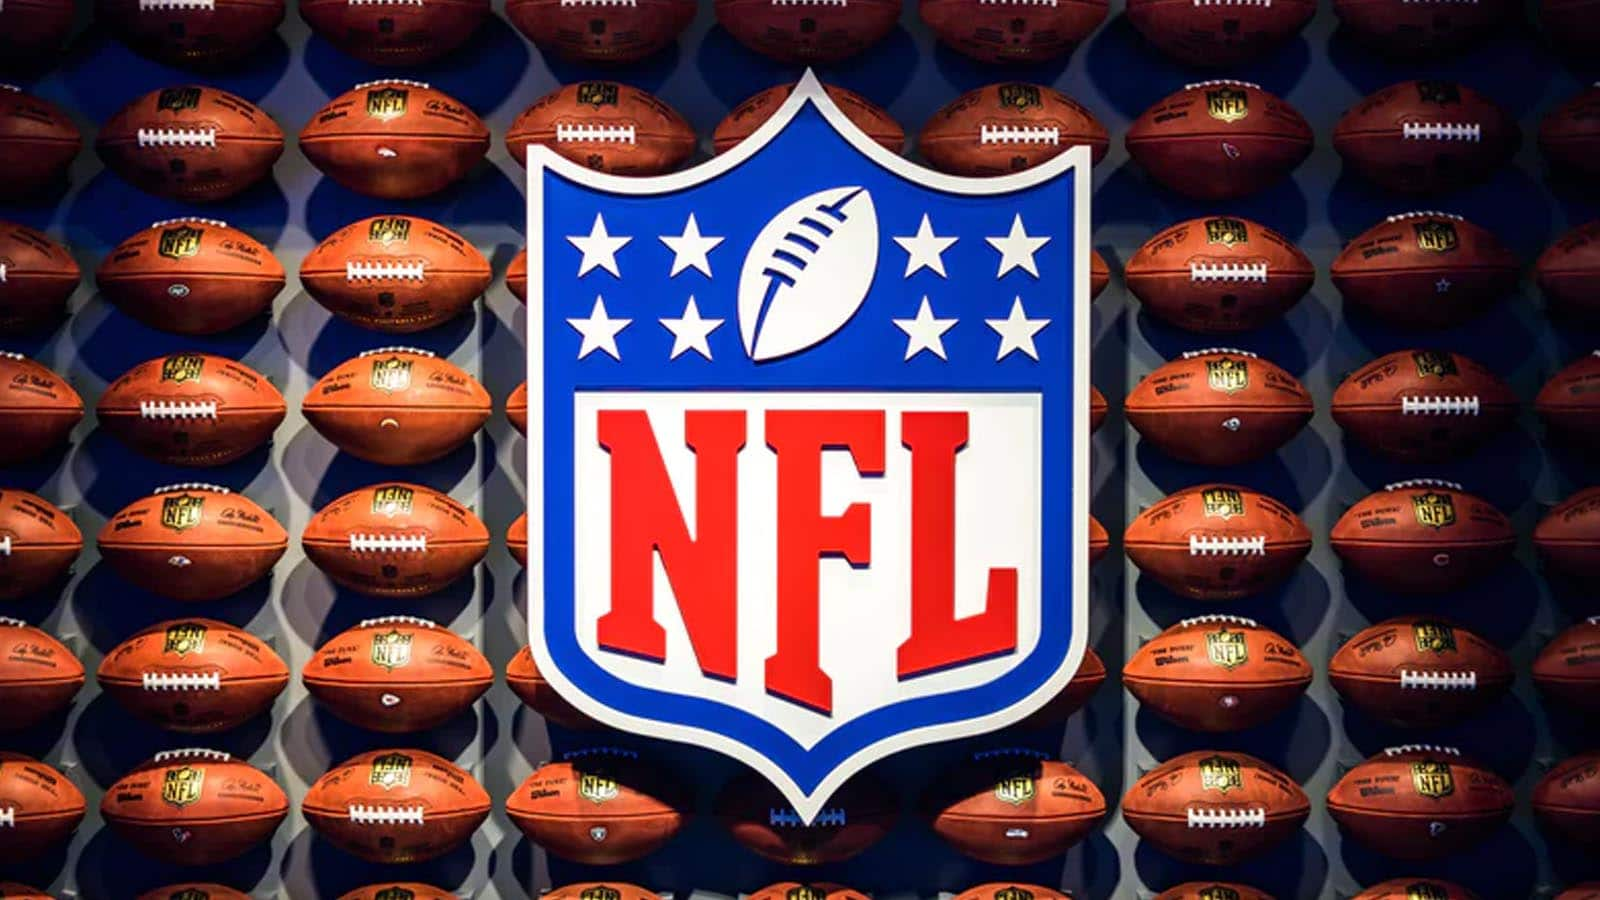 nfl logo with football background